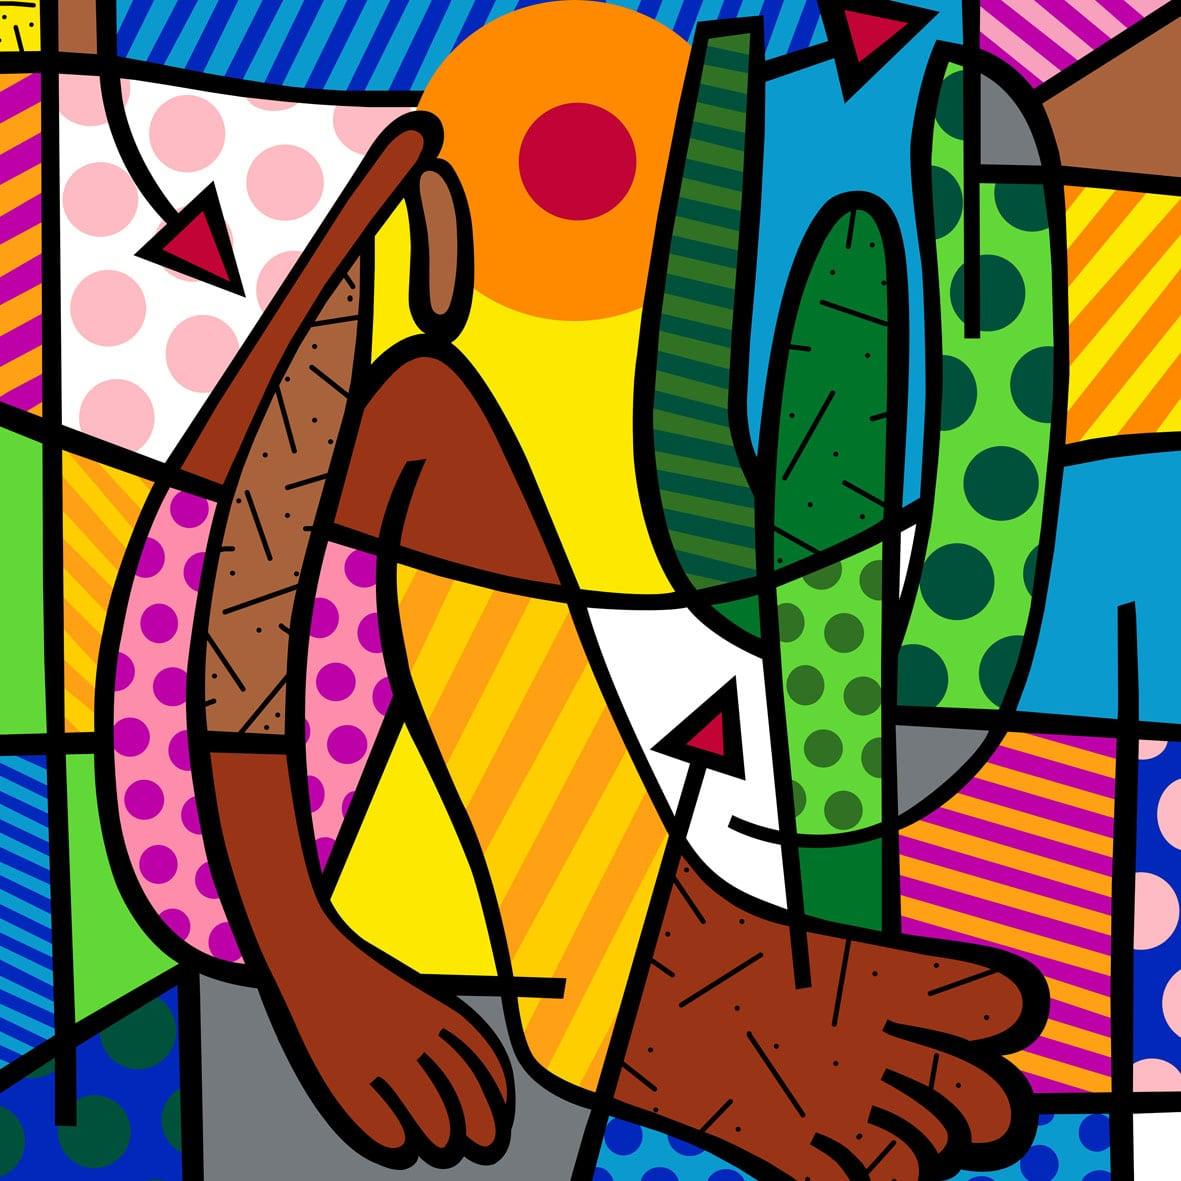 Romero Britto, Pop Art And Messages On Pinterest